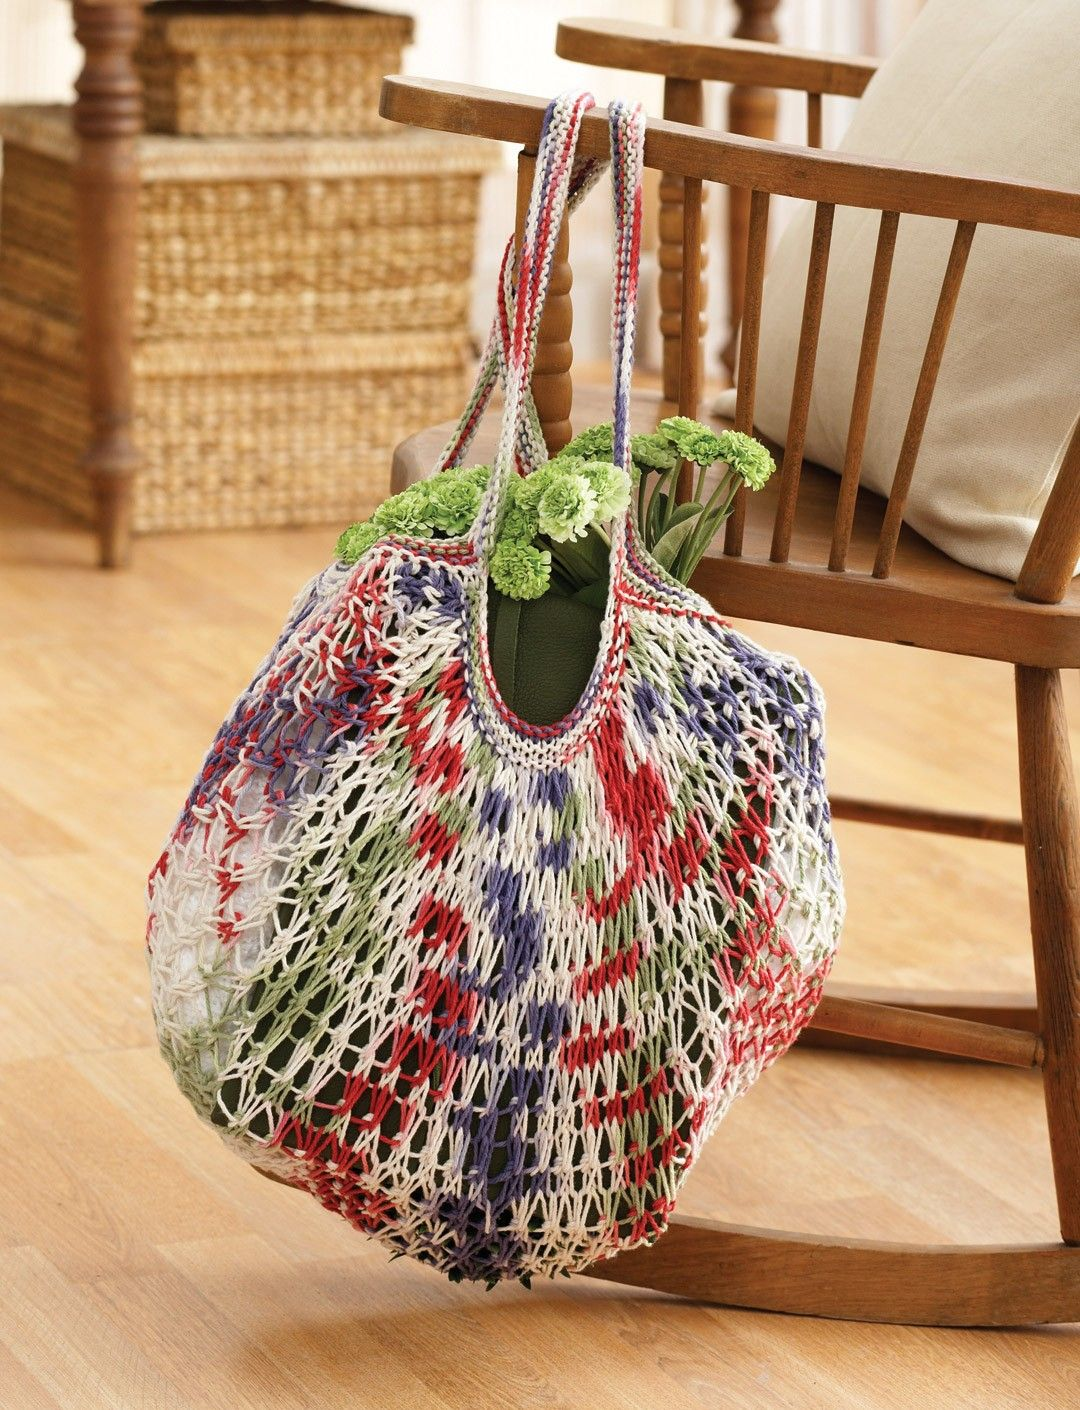 Yarnspirations.com - Lily Market Bag - Patterns | Yarnspirations ...